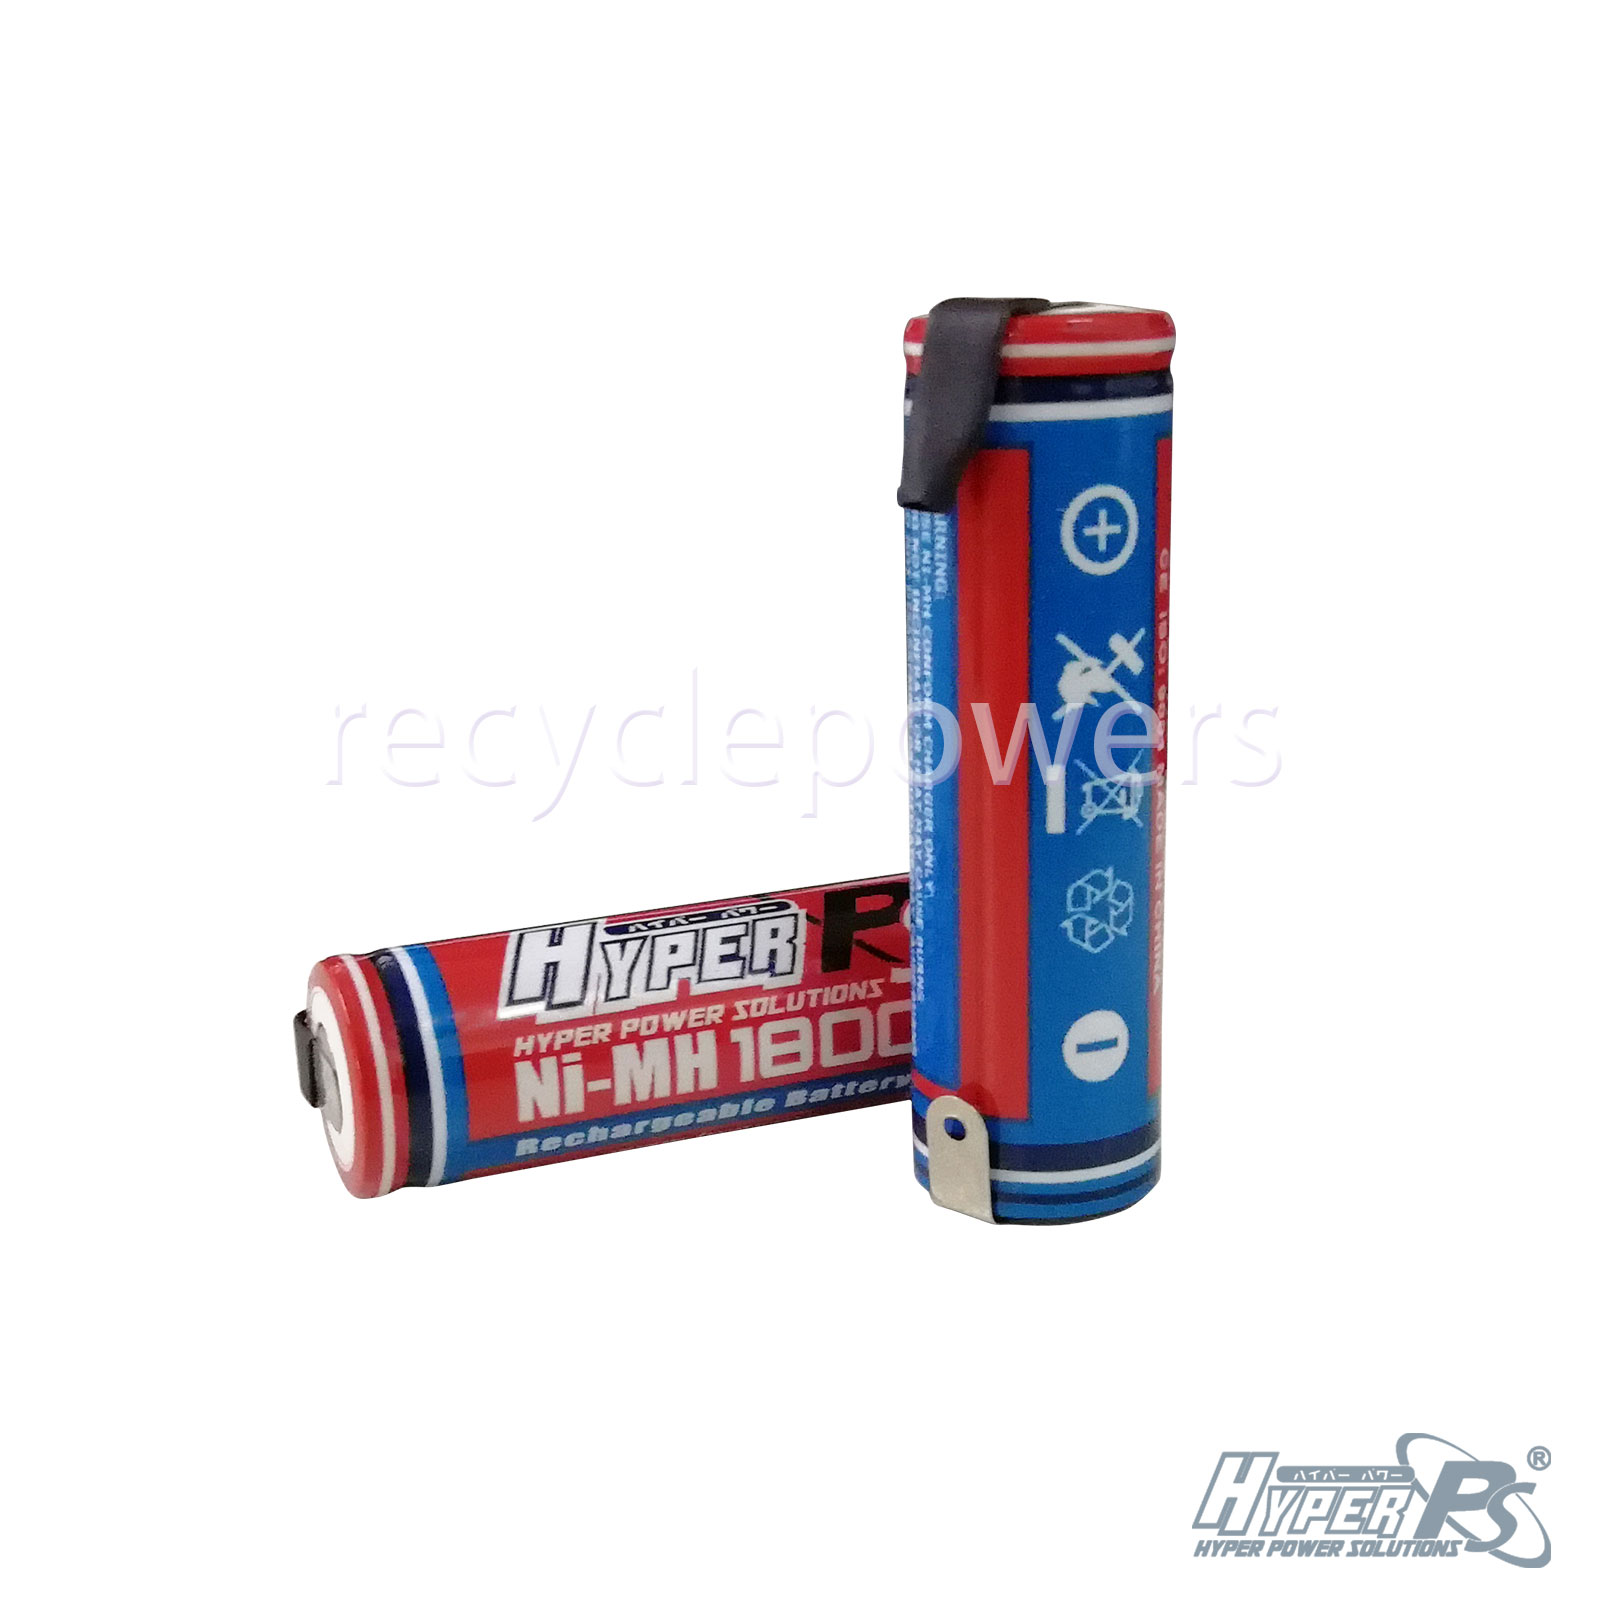 2pcs Aa 1800mah 1 2v Rechargeable Battery Hyperps With Tab